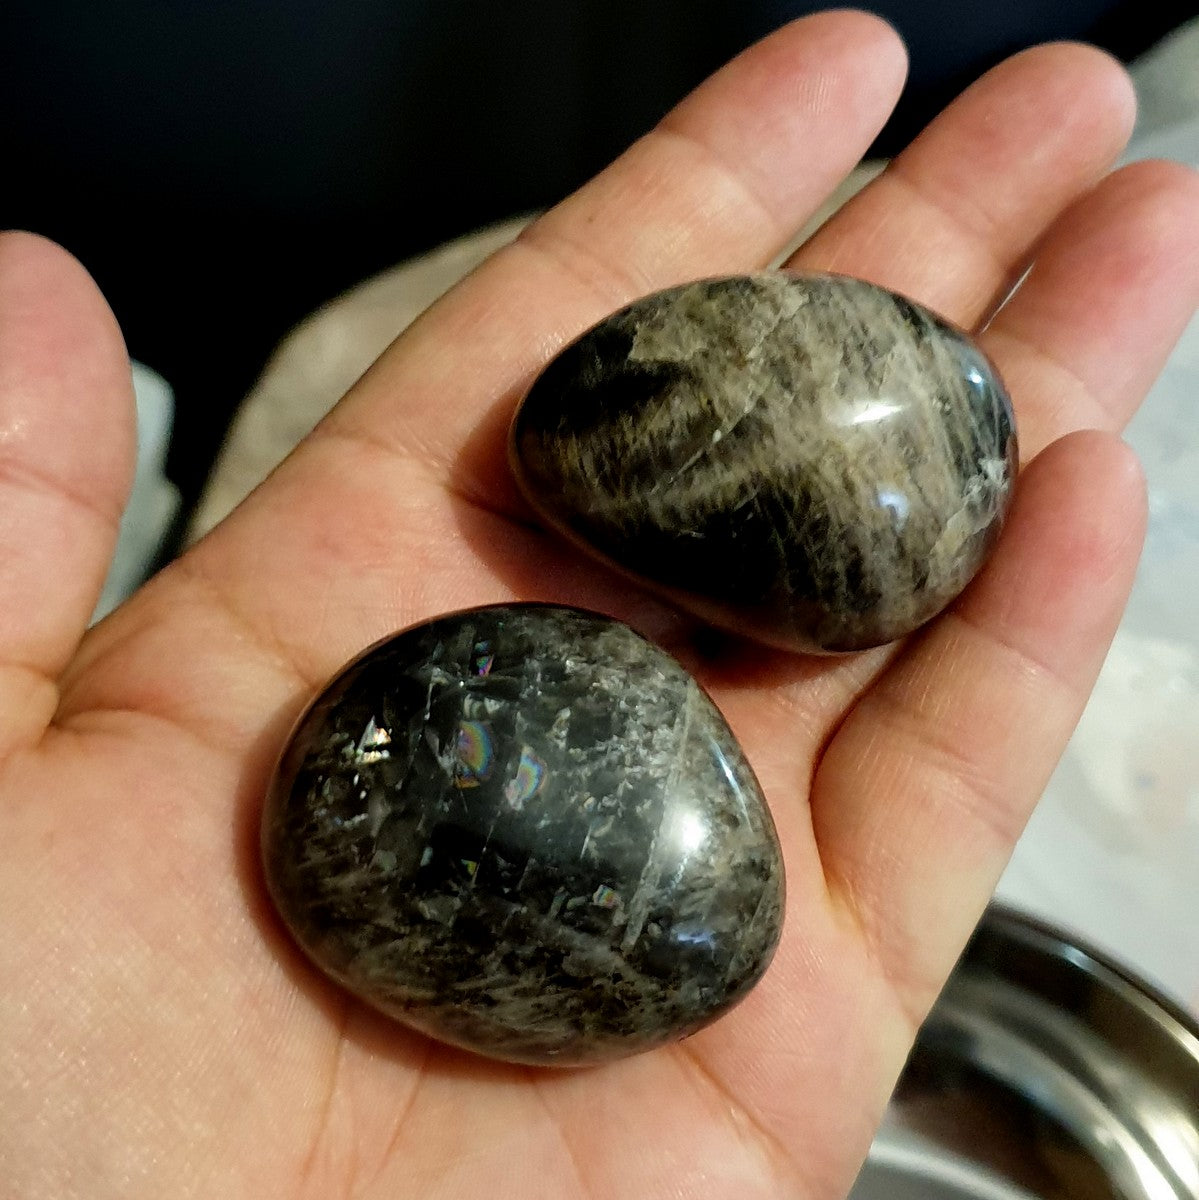 Black Moonstone Extra Large Tumbles Tumbled Stone - Shop with Afterpay at Illiom Crystals